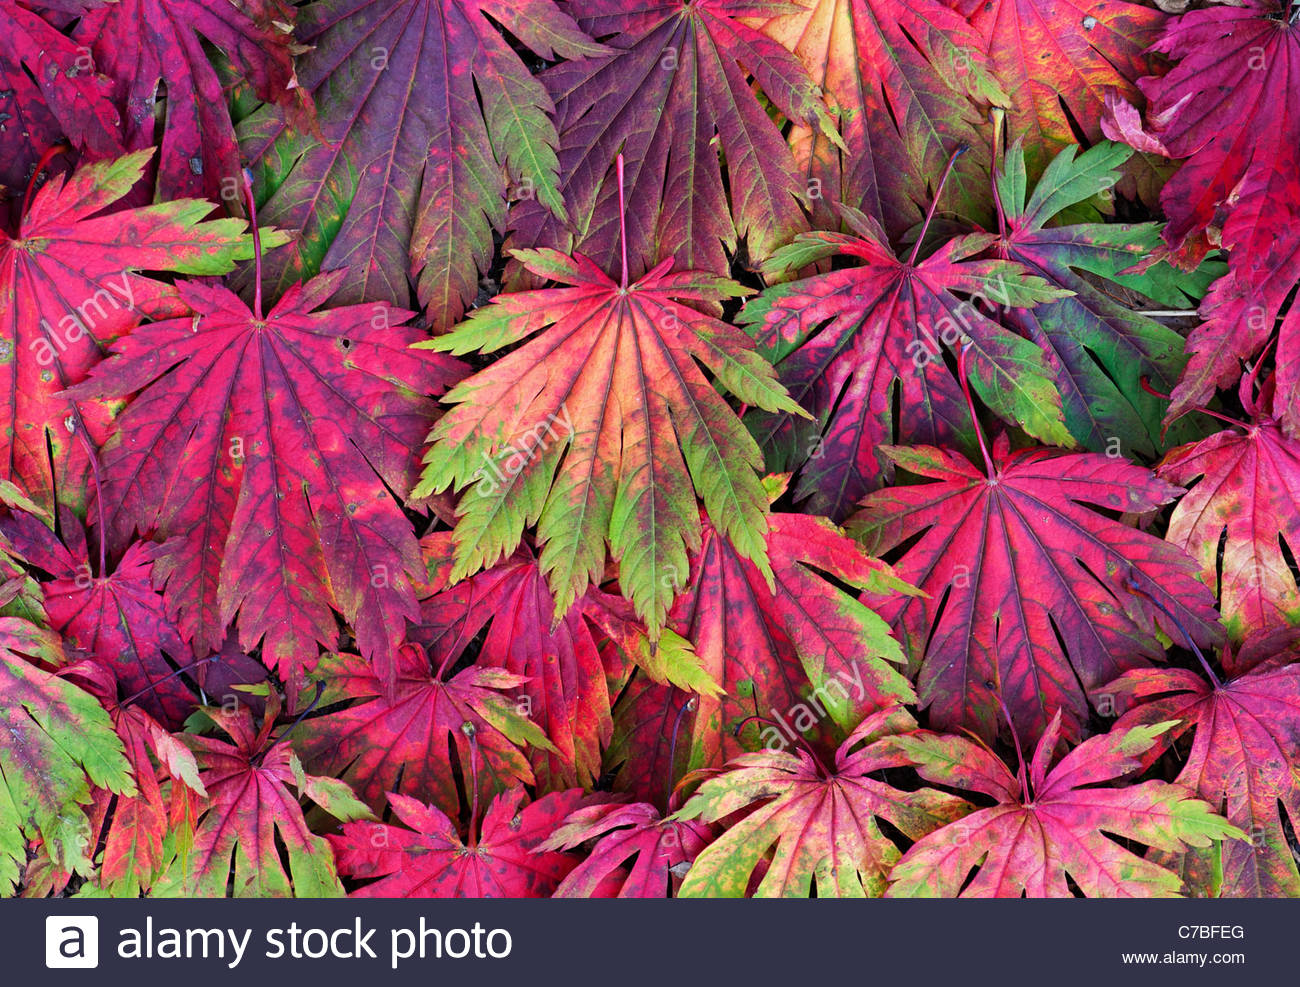 Acer Japonicum Attaryi leaves. Japanese Maple leaves changing colour in autumn. Red Acer leaf pattern - Stock Image